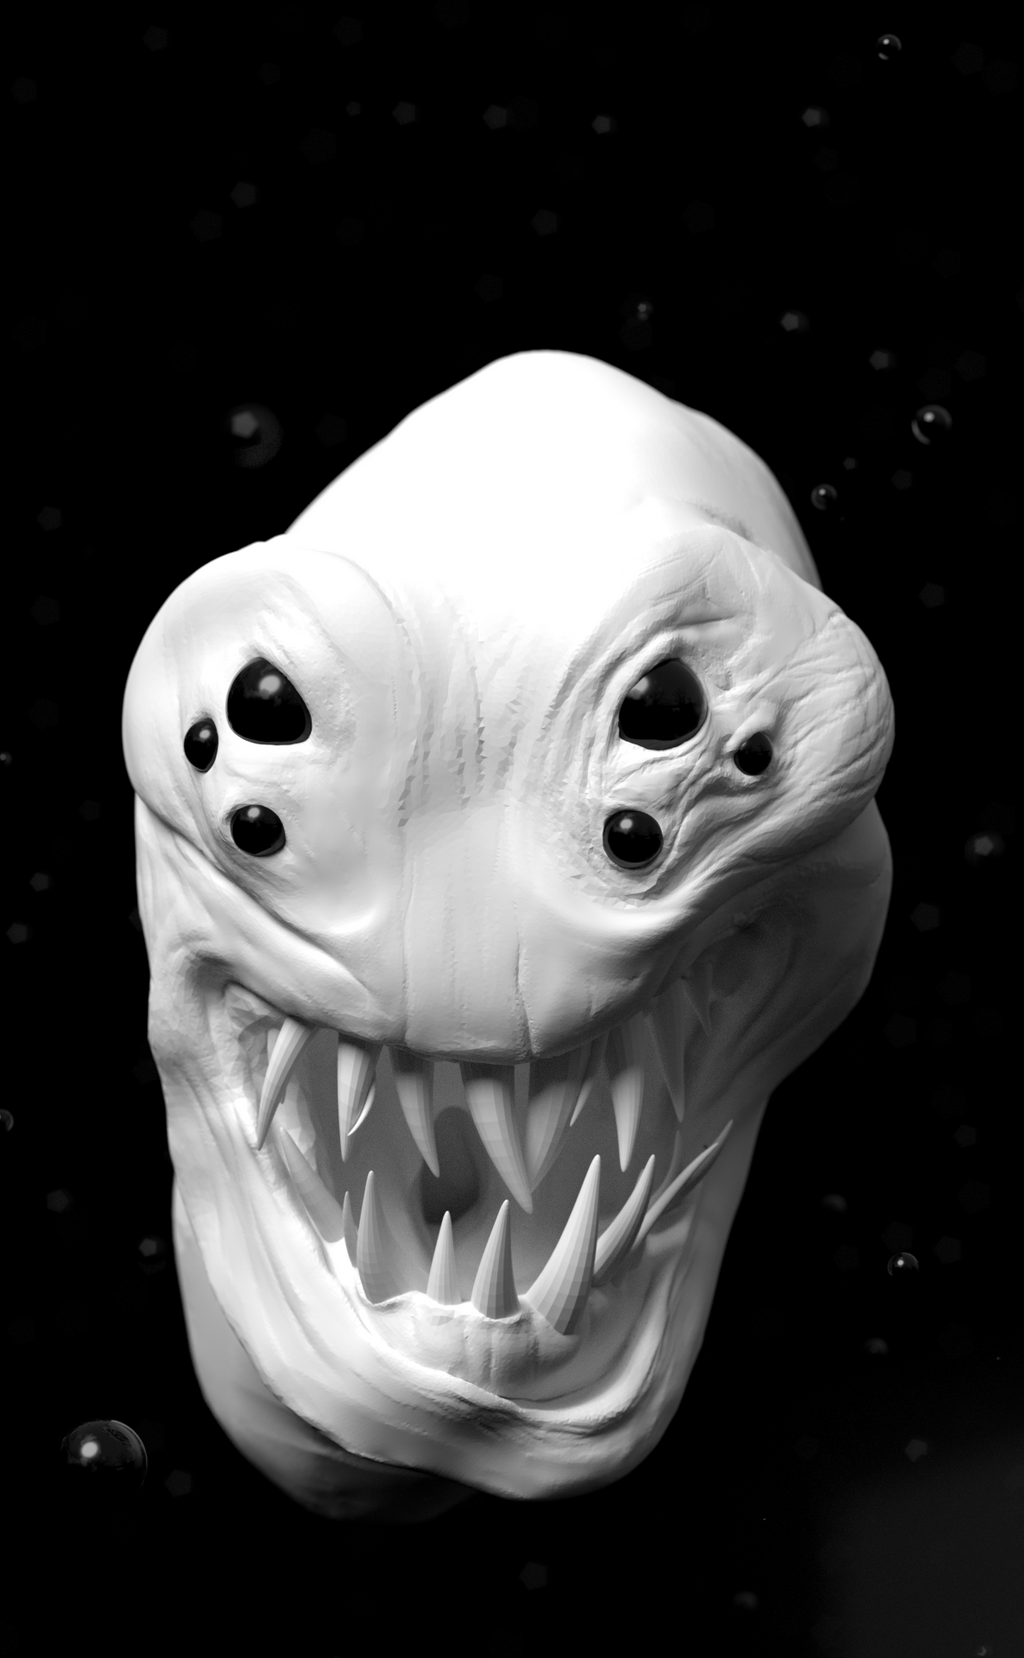 Creature WIP Front Angle CloseUp by Shastro